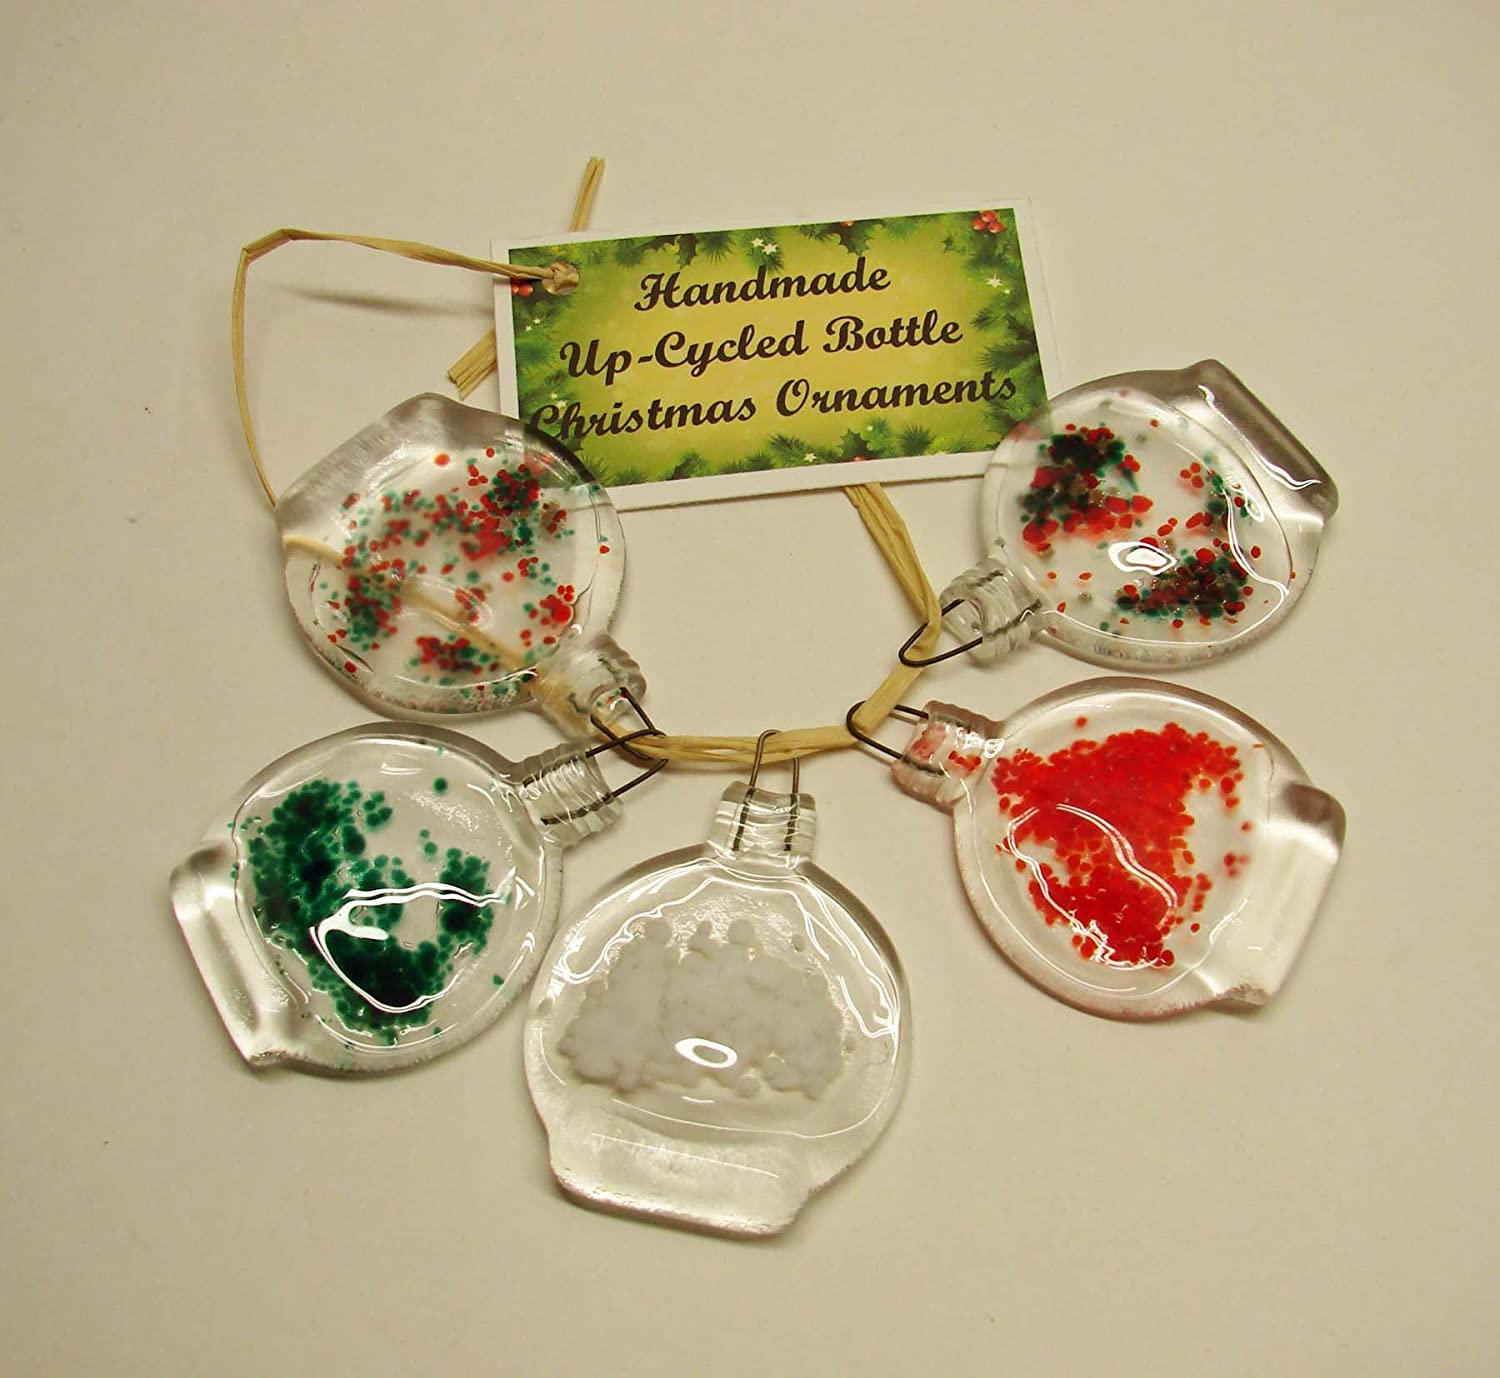 Handmade Set of 5 Christmas Ornaments from Small Upcycled Glass Bottles